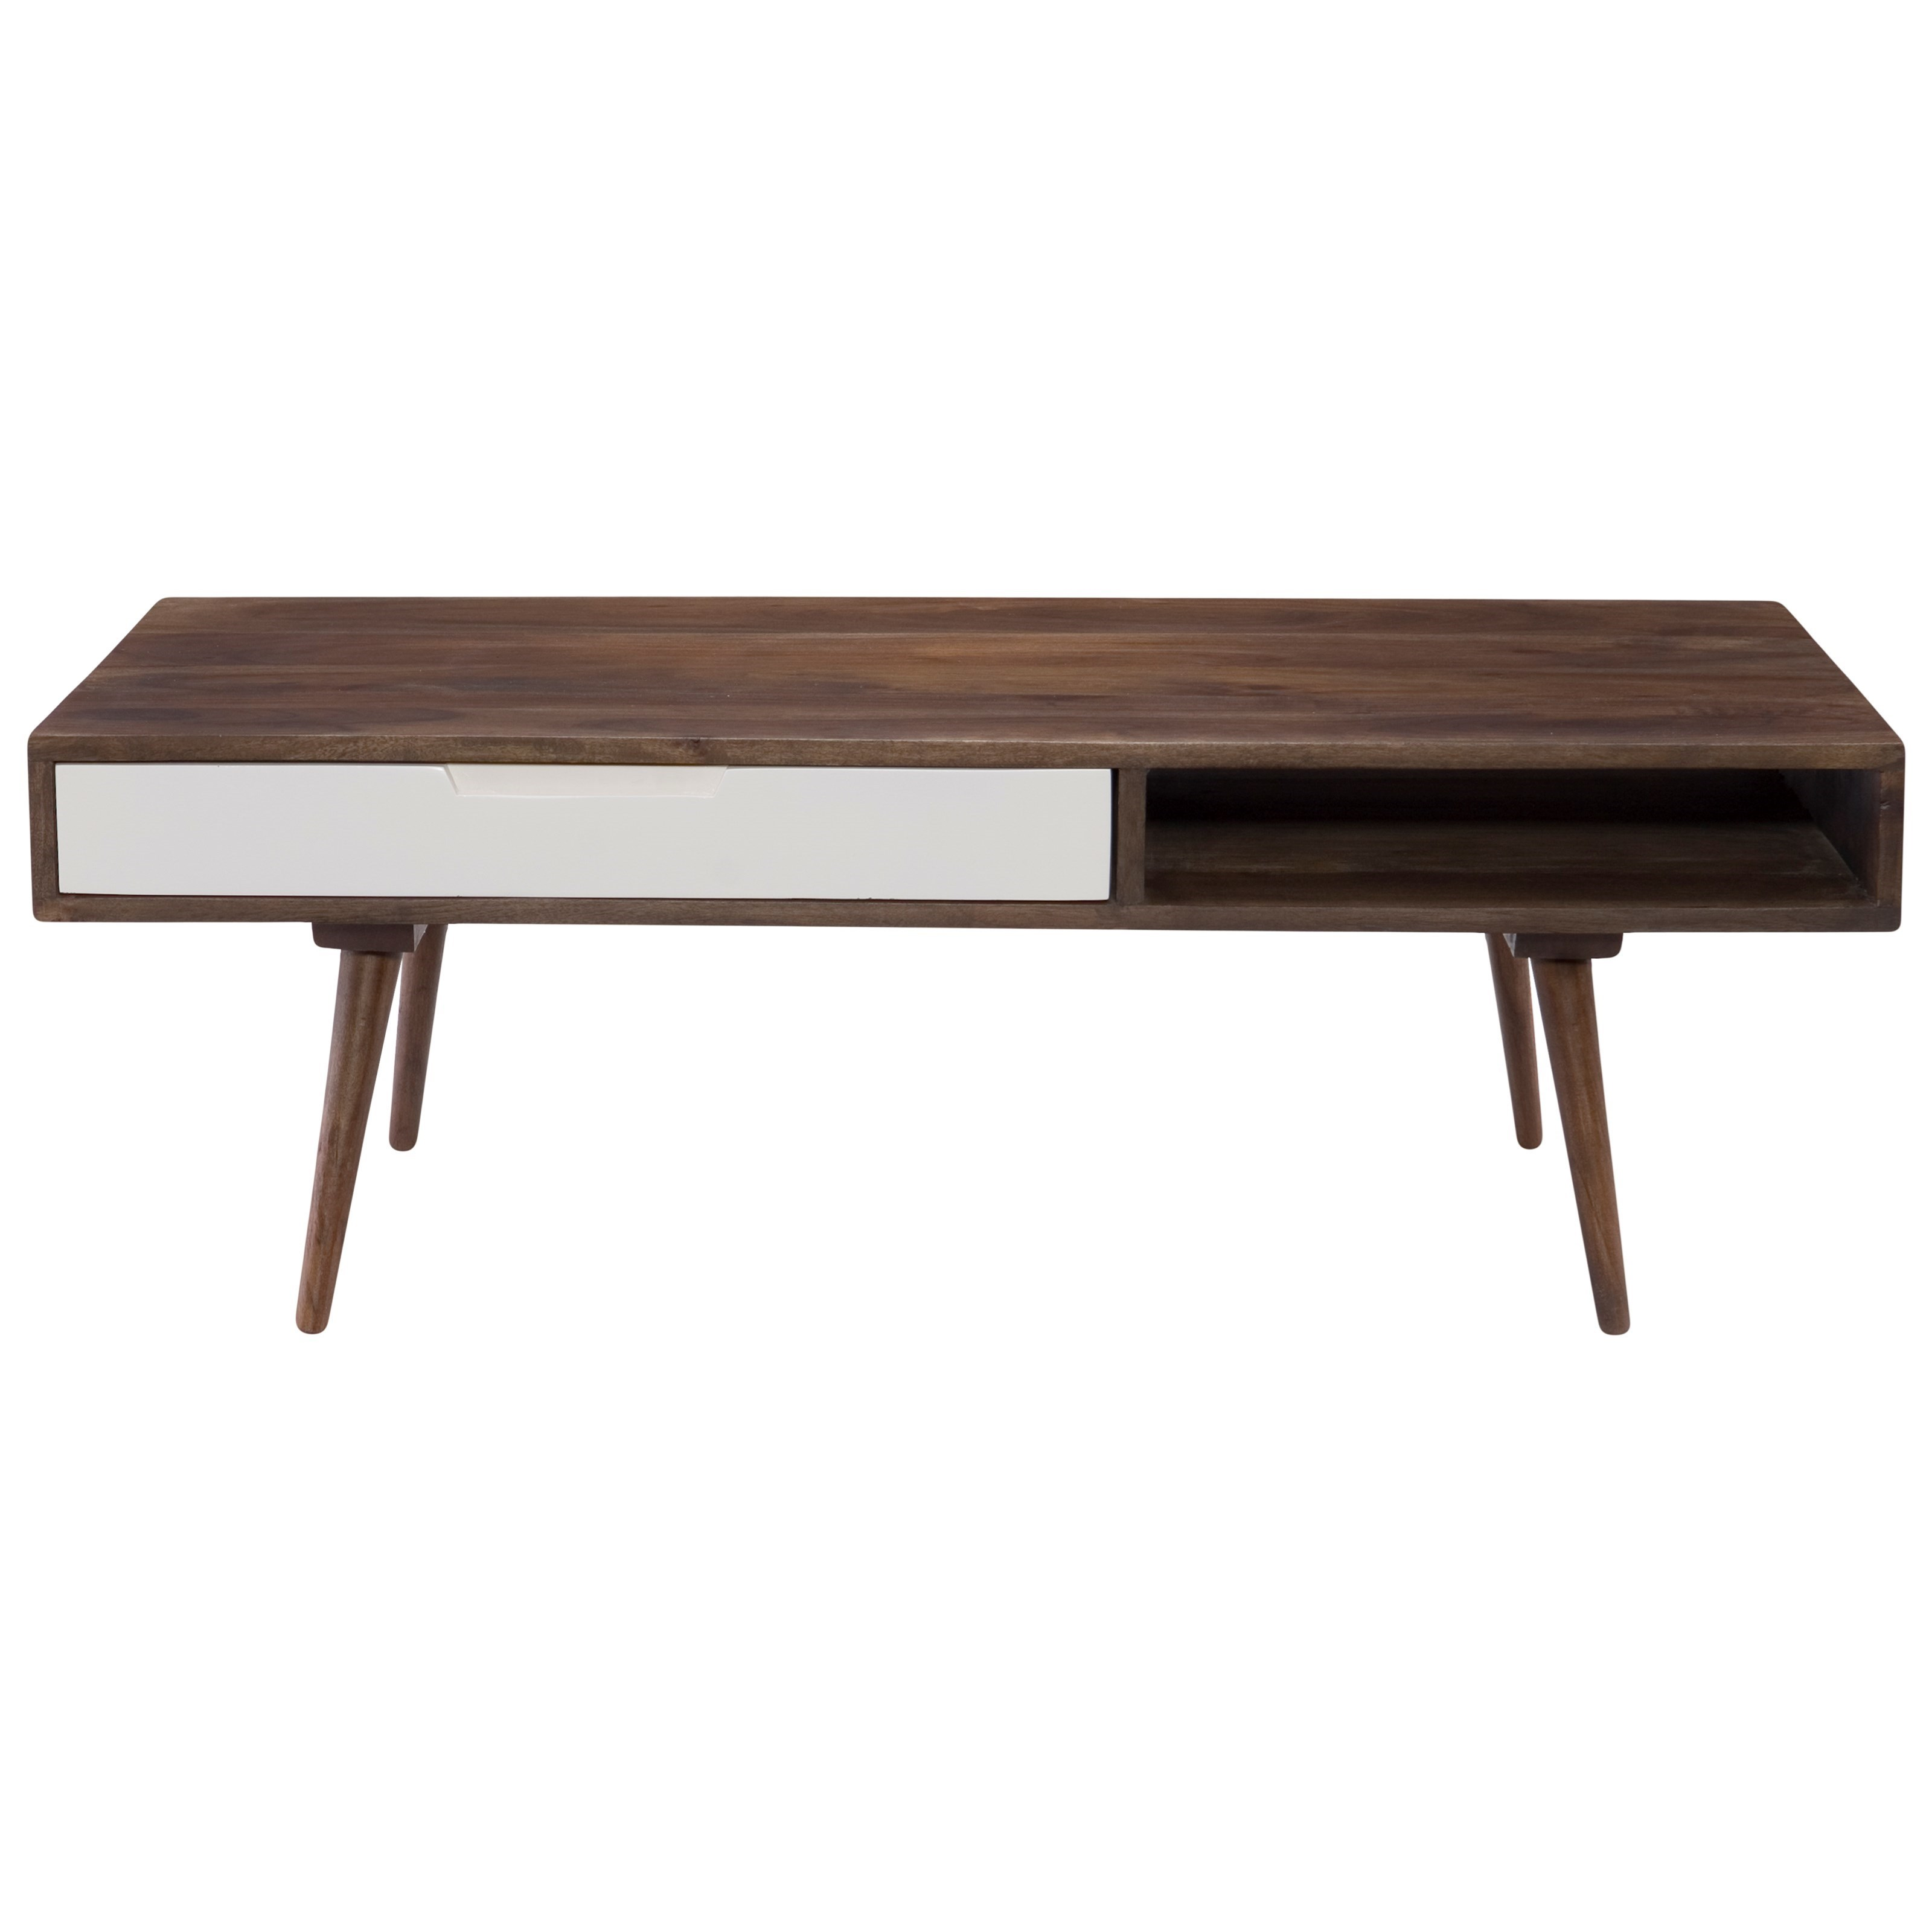 Moe's Home Collection Blossom Coffee Table - Item Number: BZ-1008-20